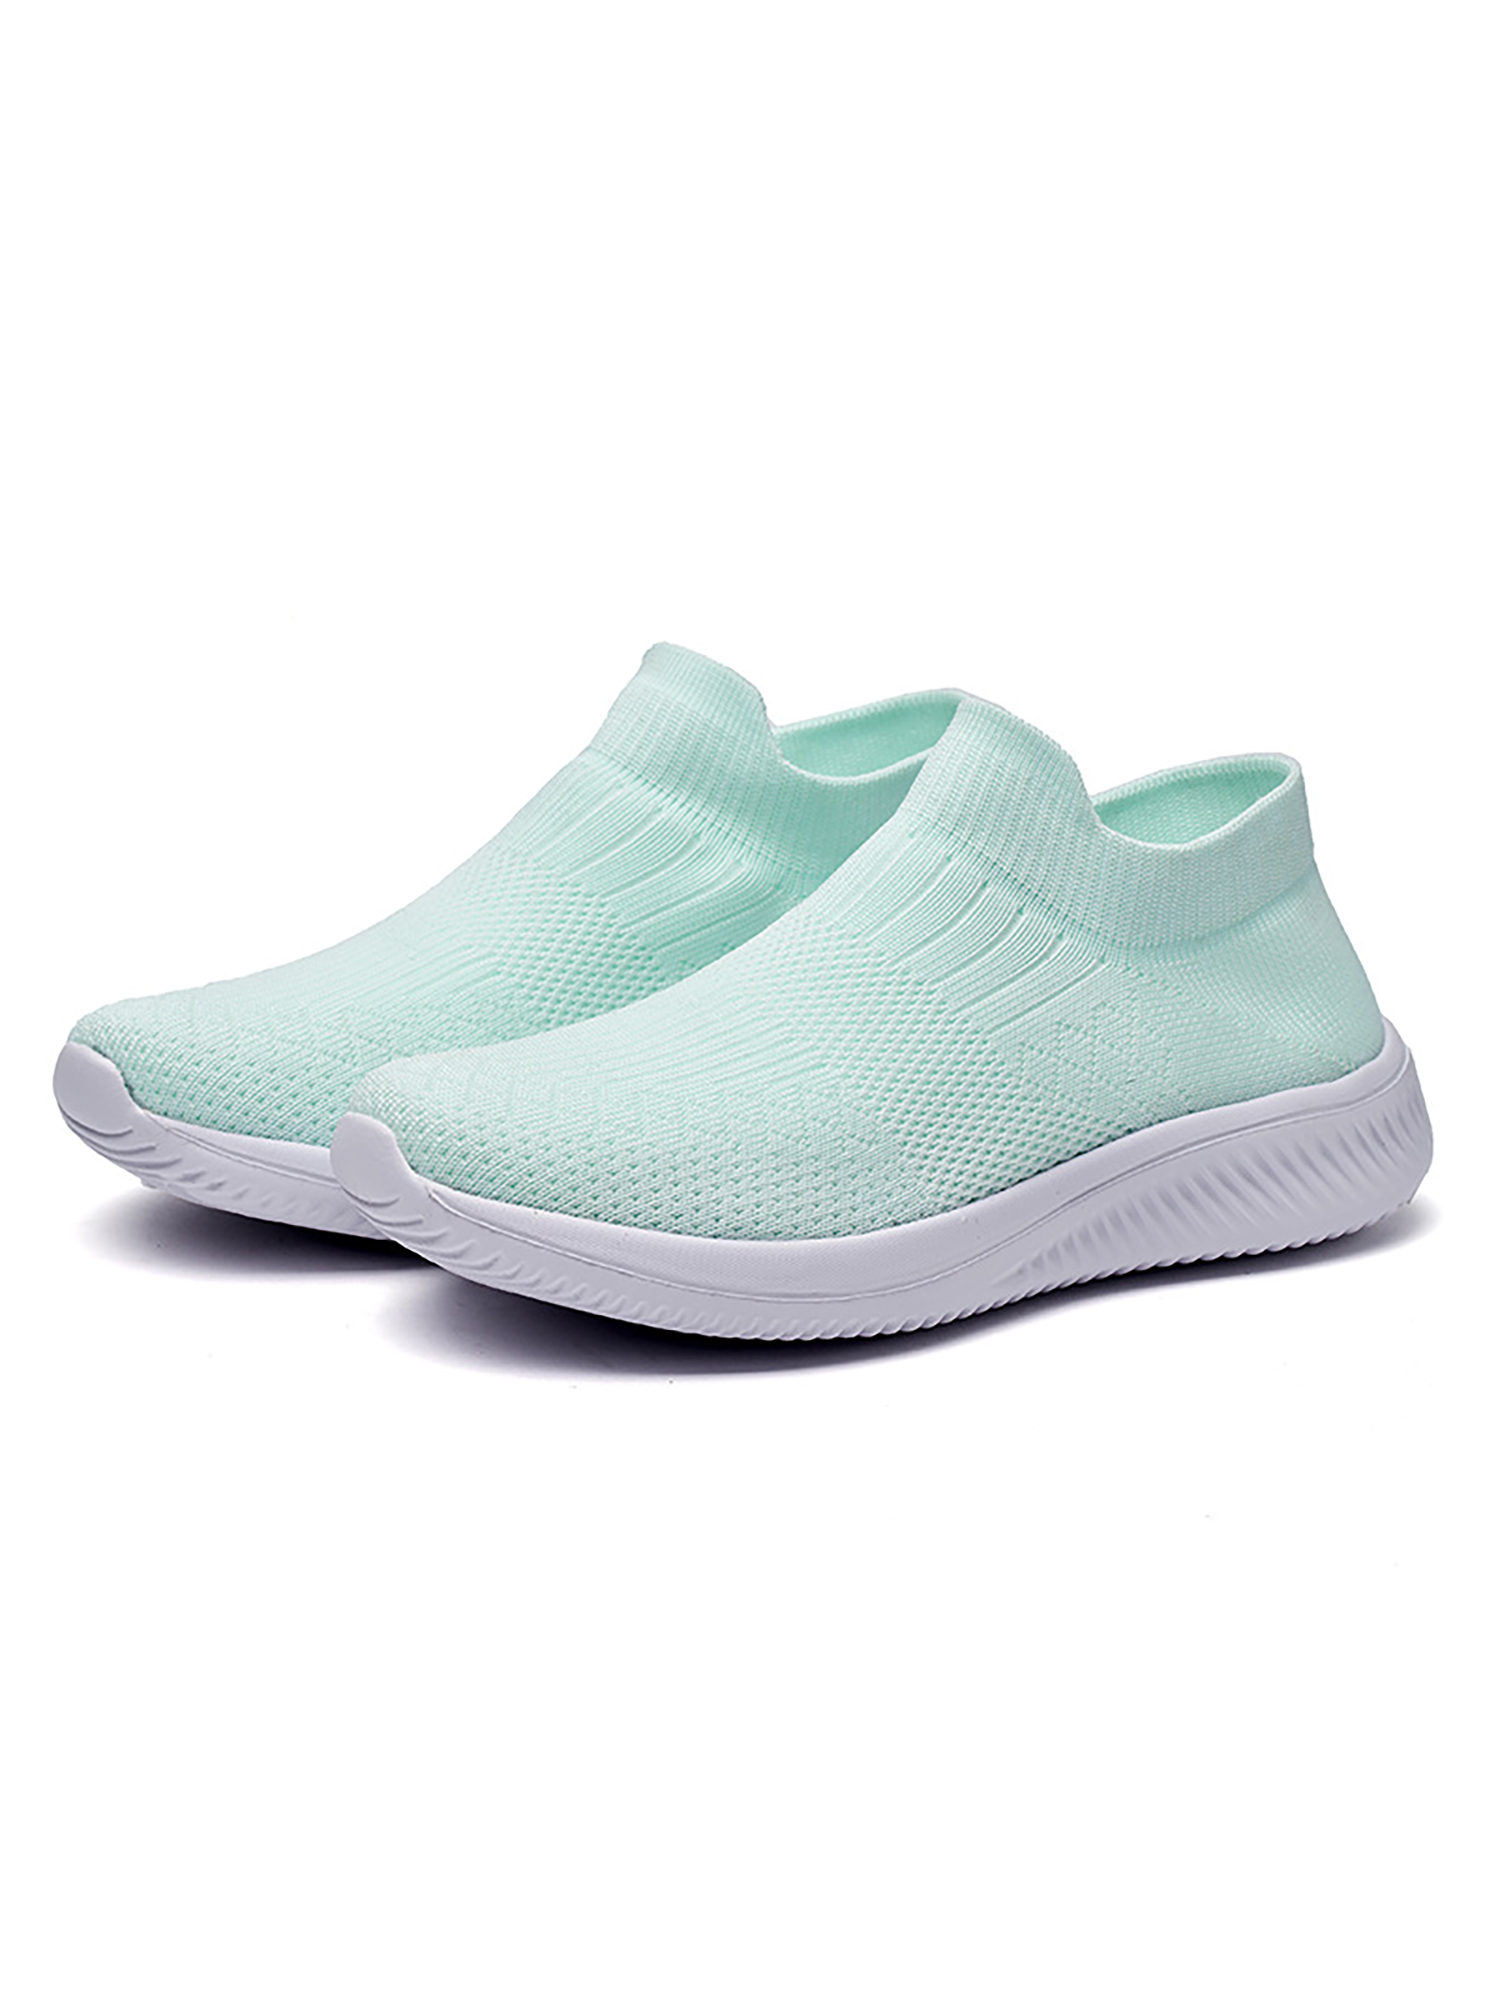 Details about  /Women Ladies Slip On Mesh Trainers Running  Gym Sneakers Walking Sports Shoes B